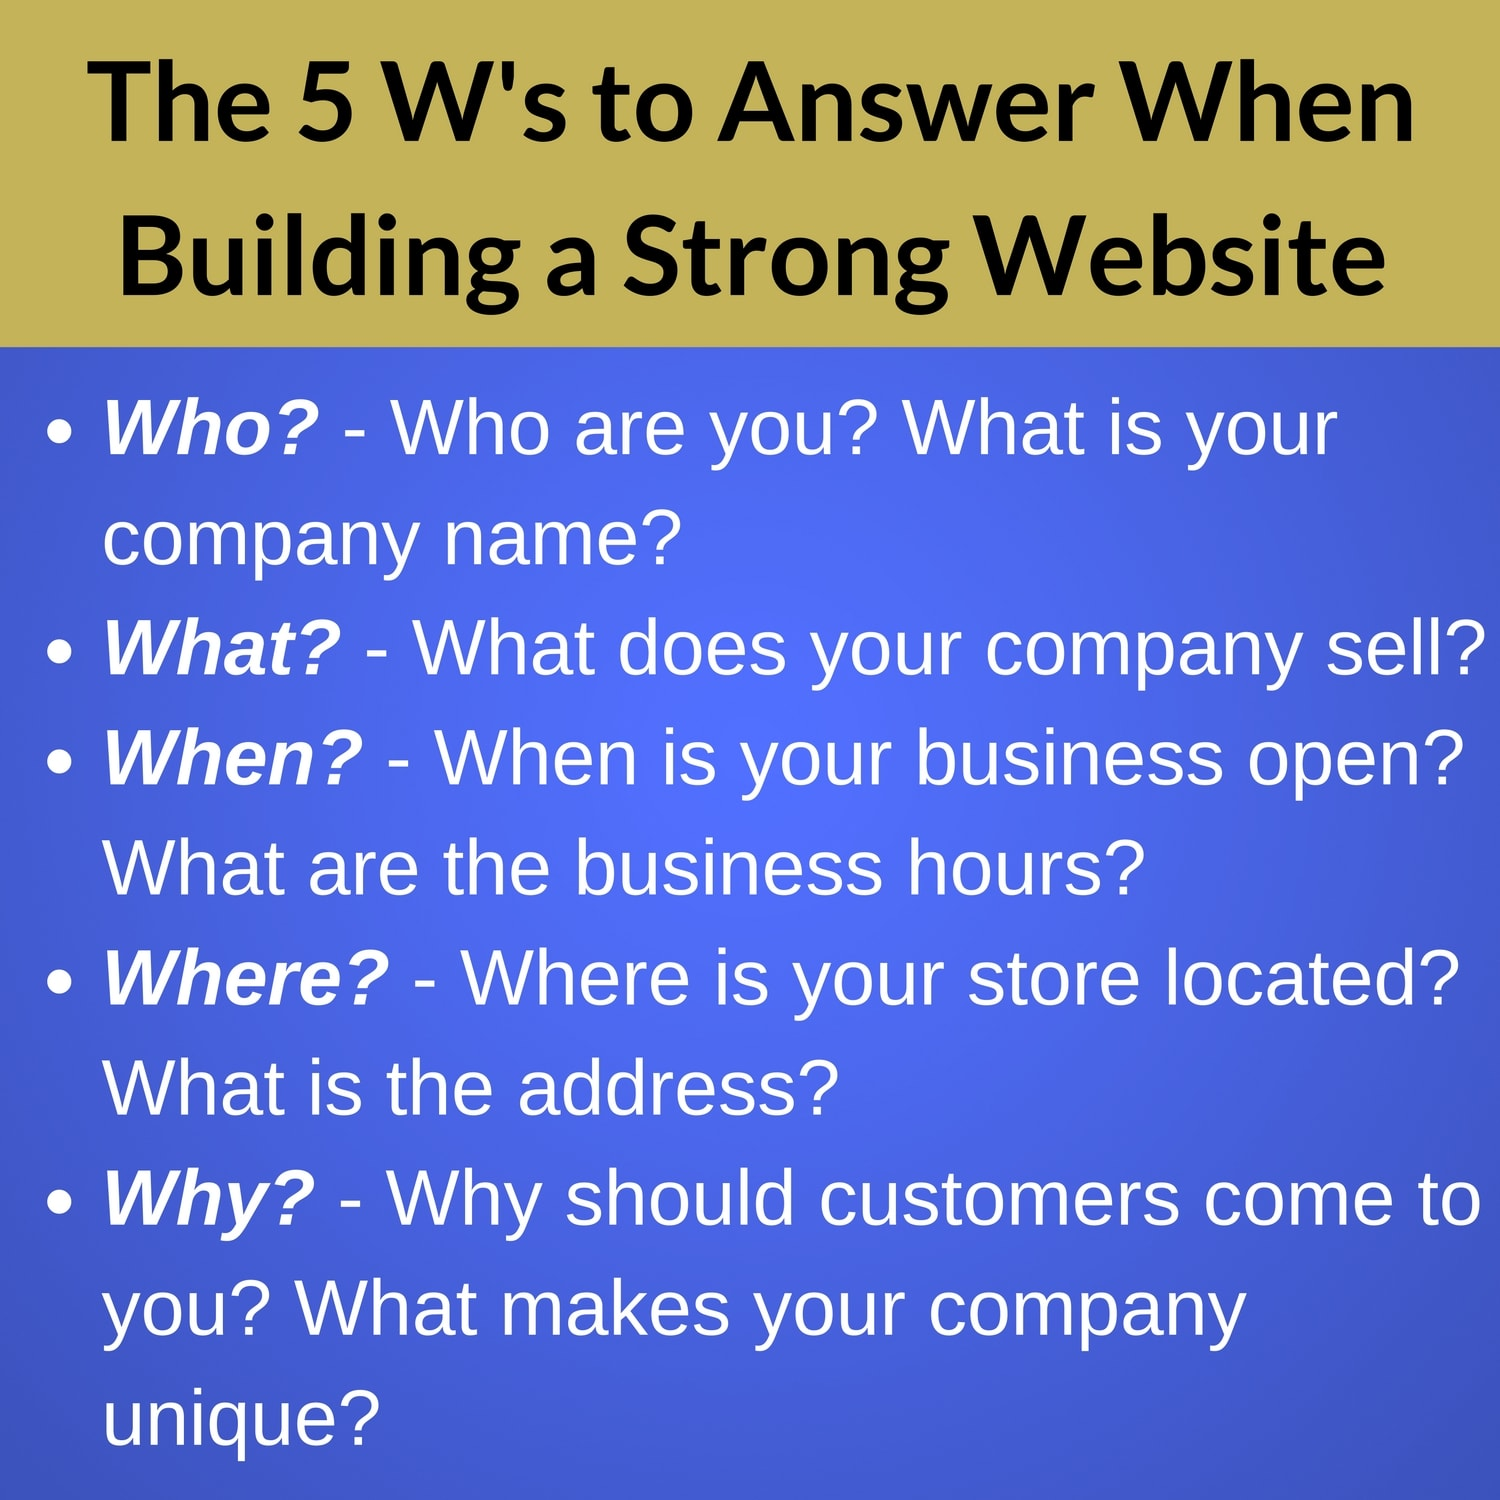 The 5 Ws you need to answer when building a strong website